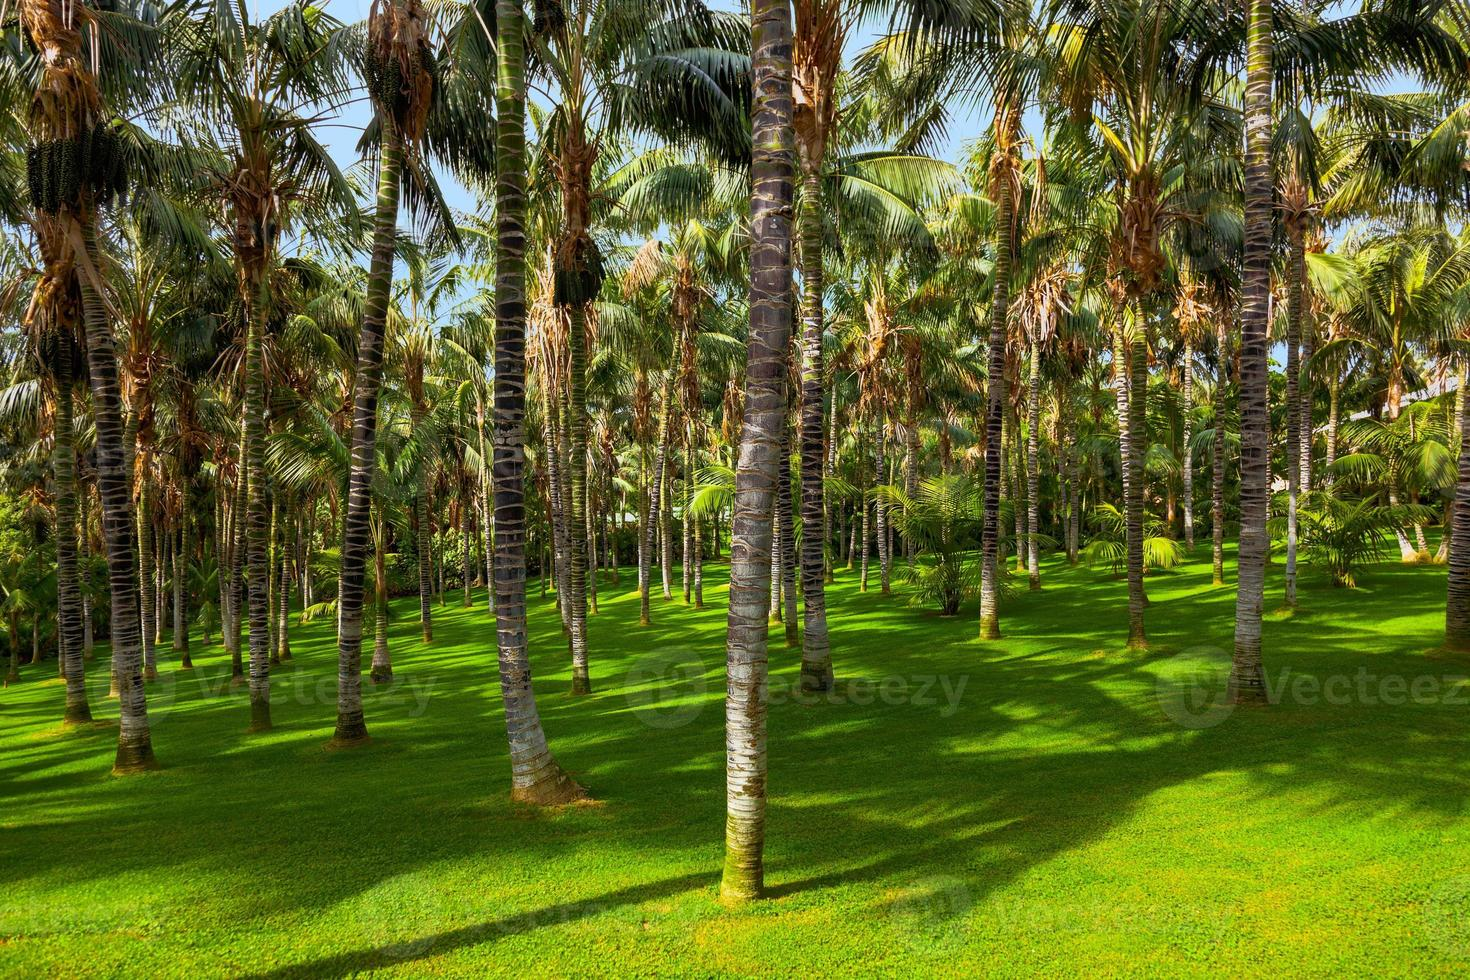 Palms at Tenerife - Canary islands photo